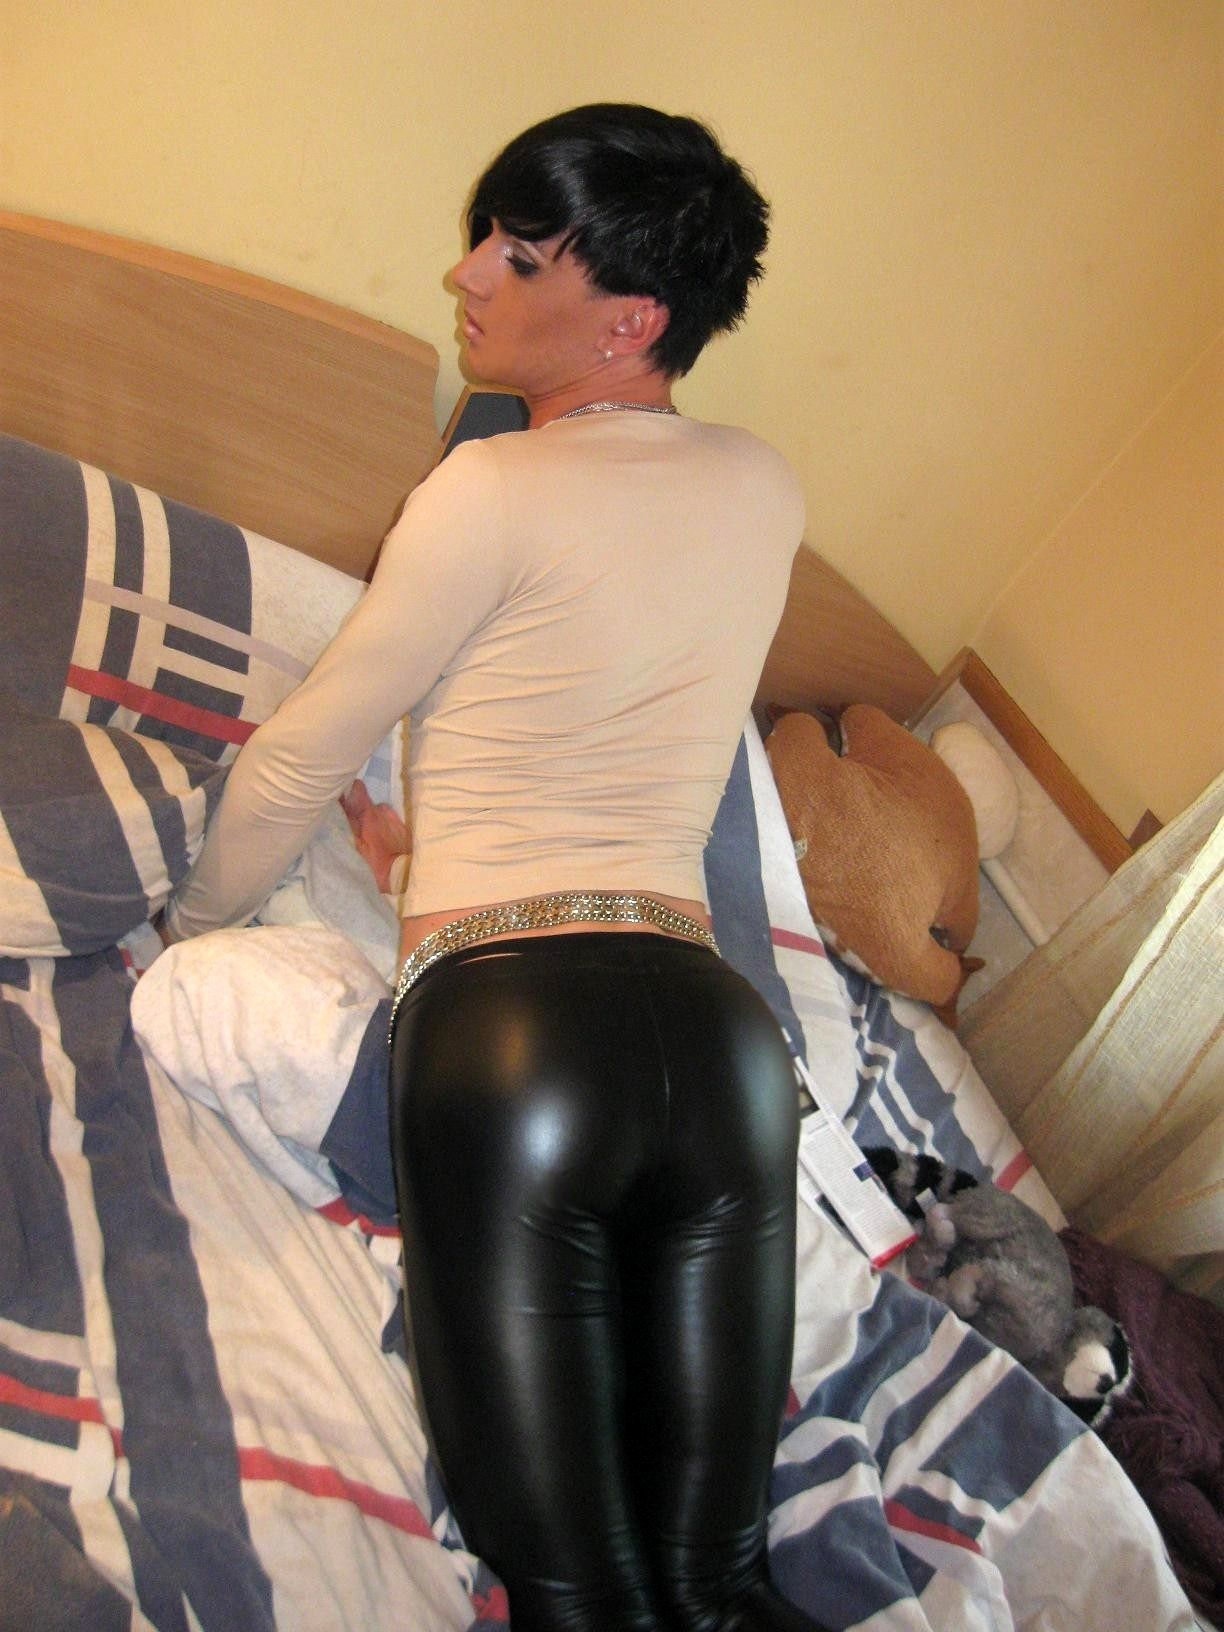 Sissy trap femboy ass